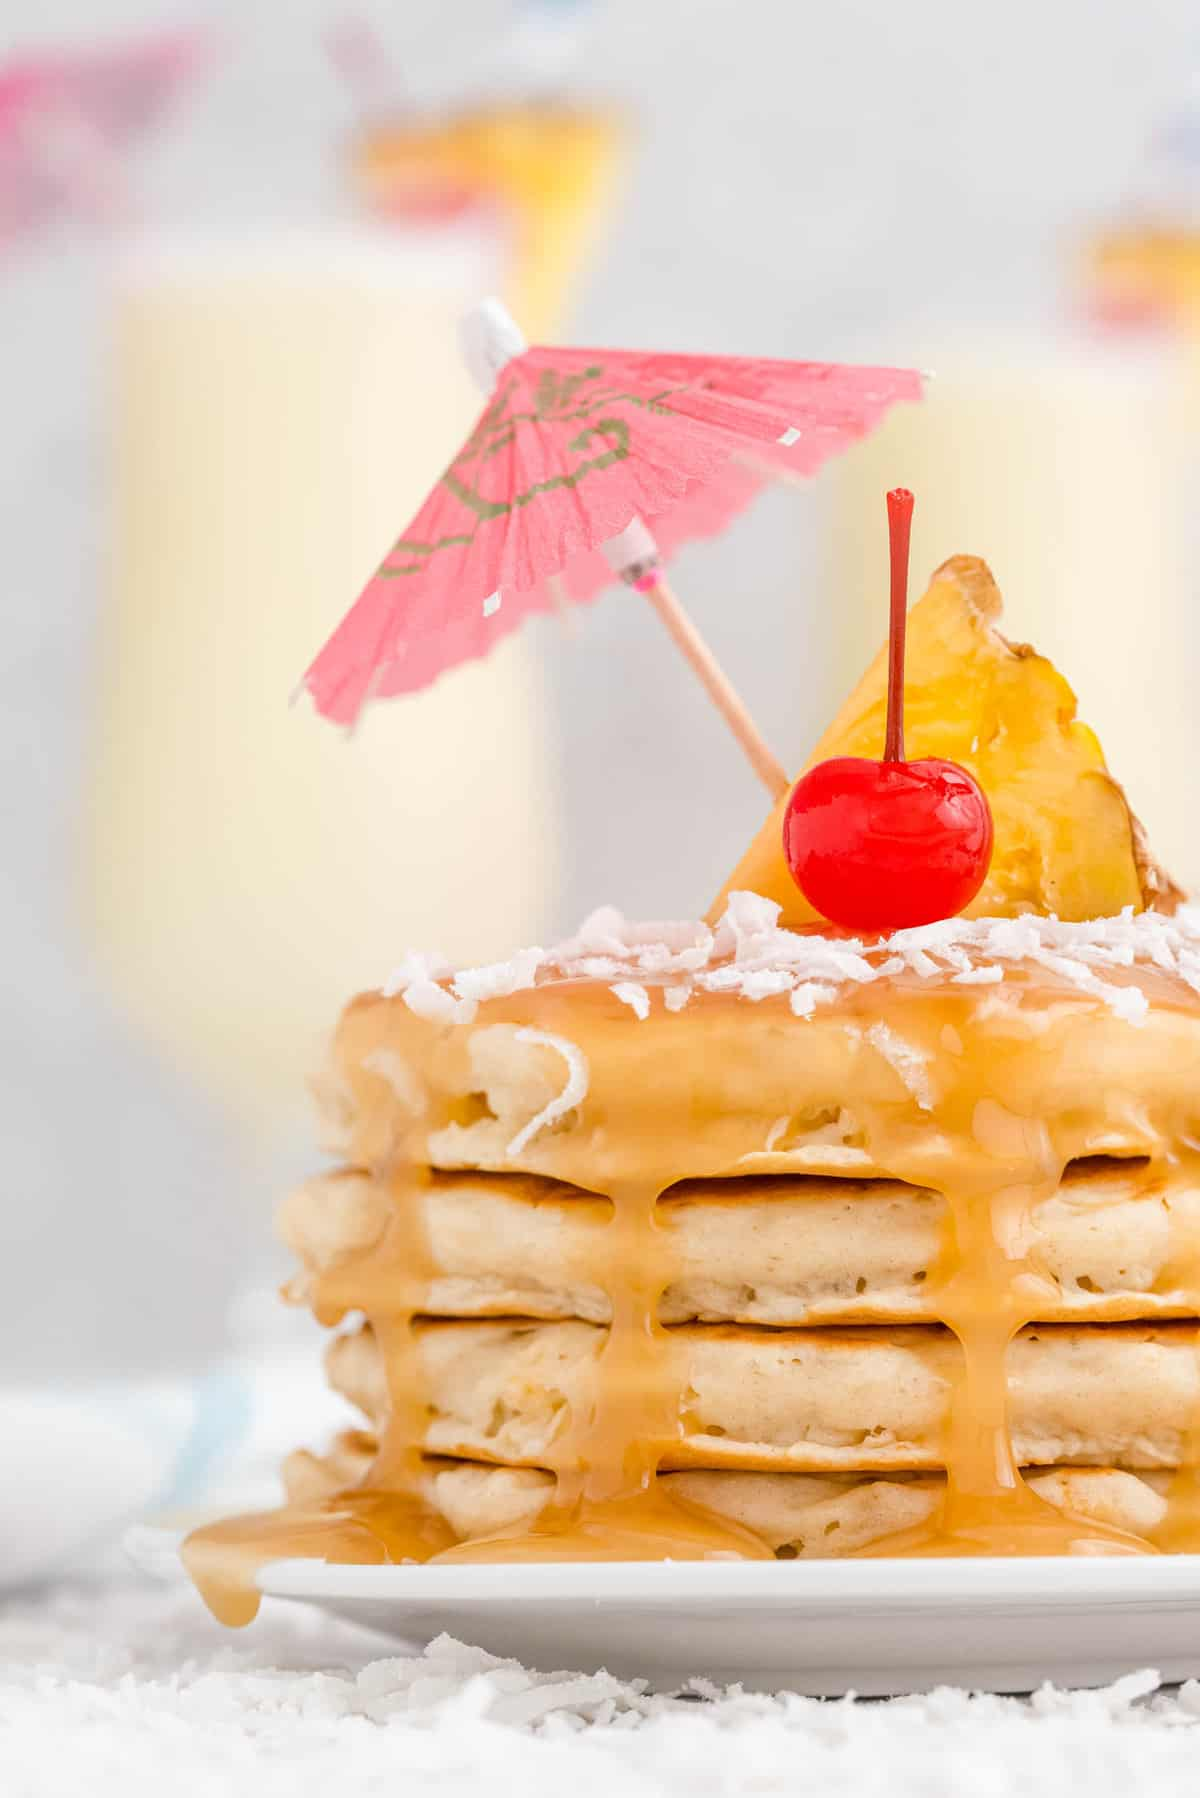 Stack of pancakes with caramel sauce, coconut, and a paper umbrella.